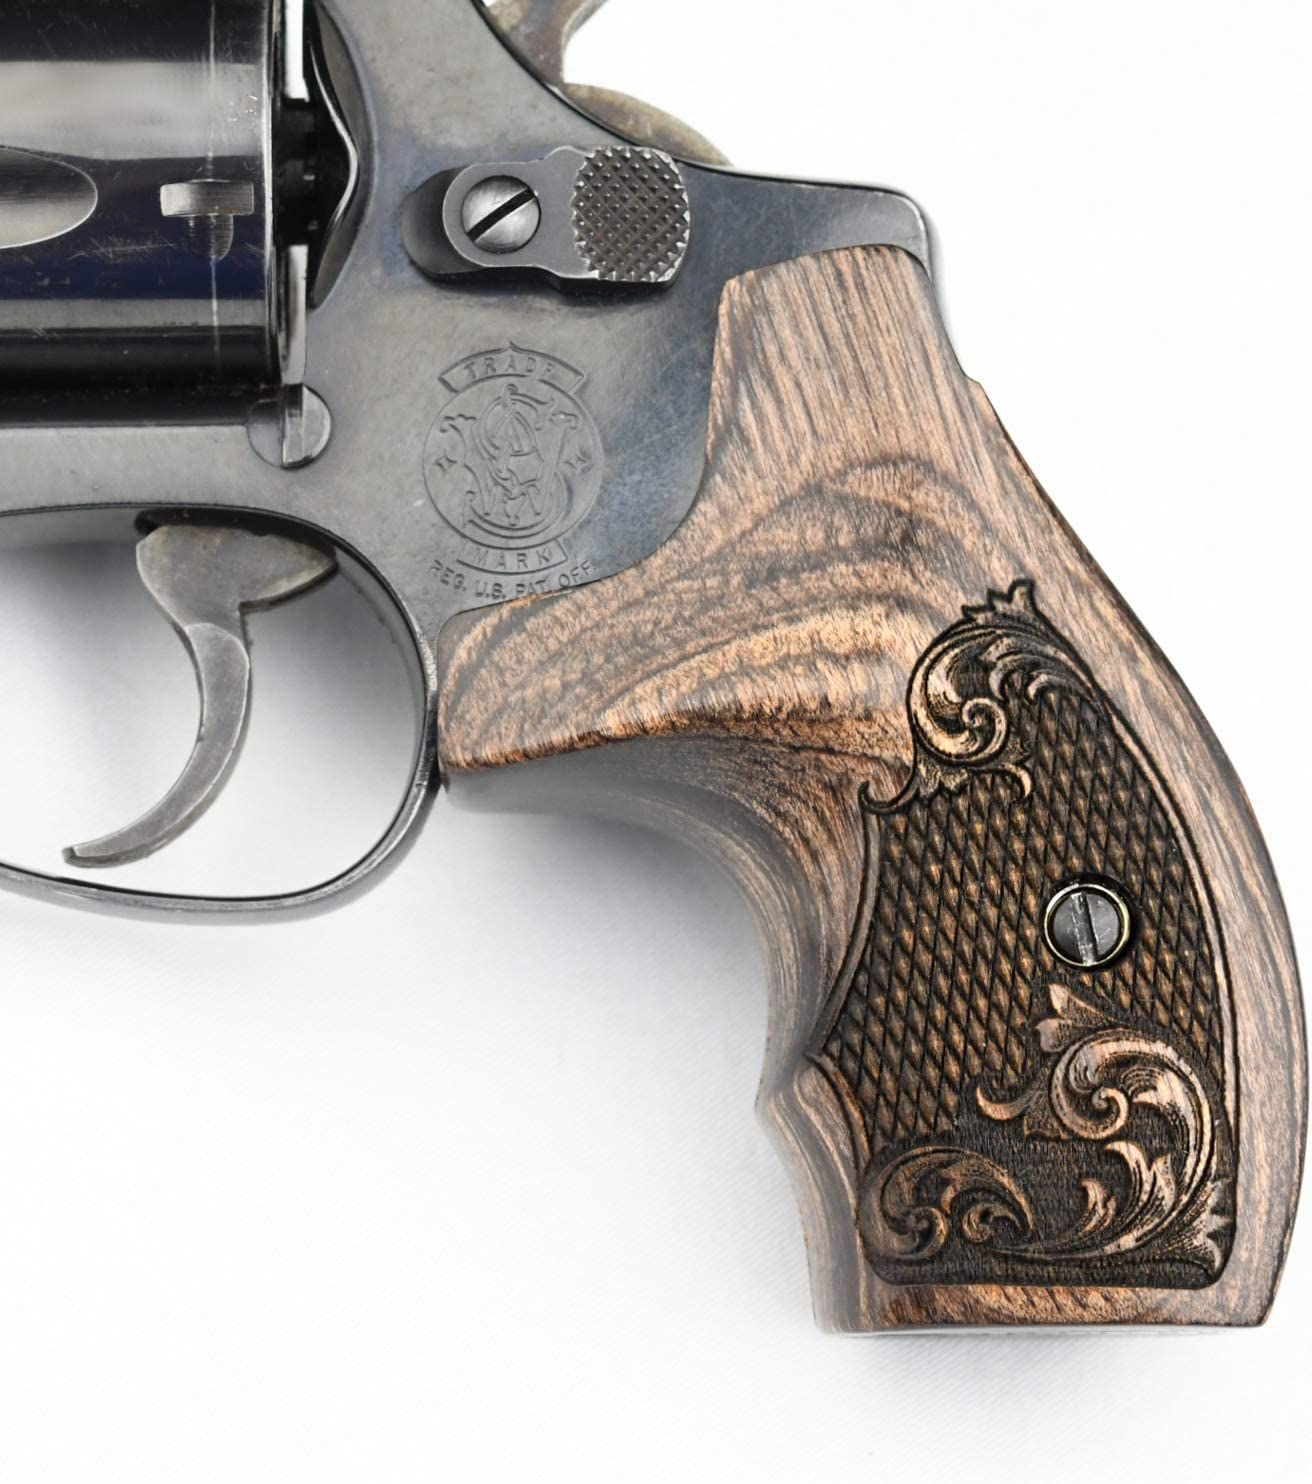 Smith and wesson grips revolver